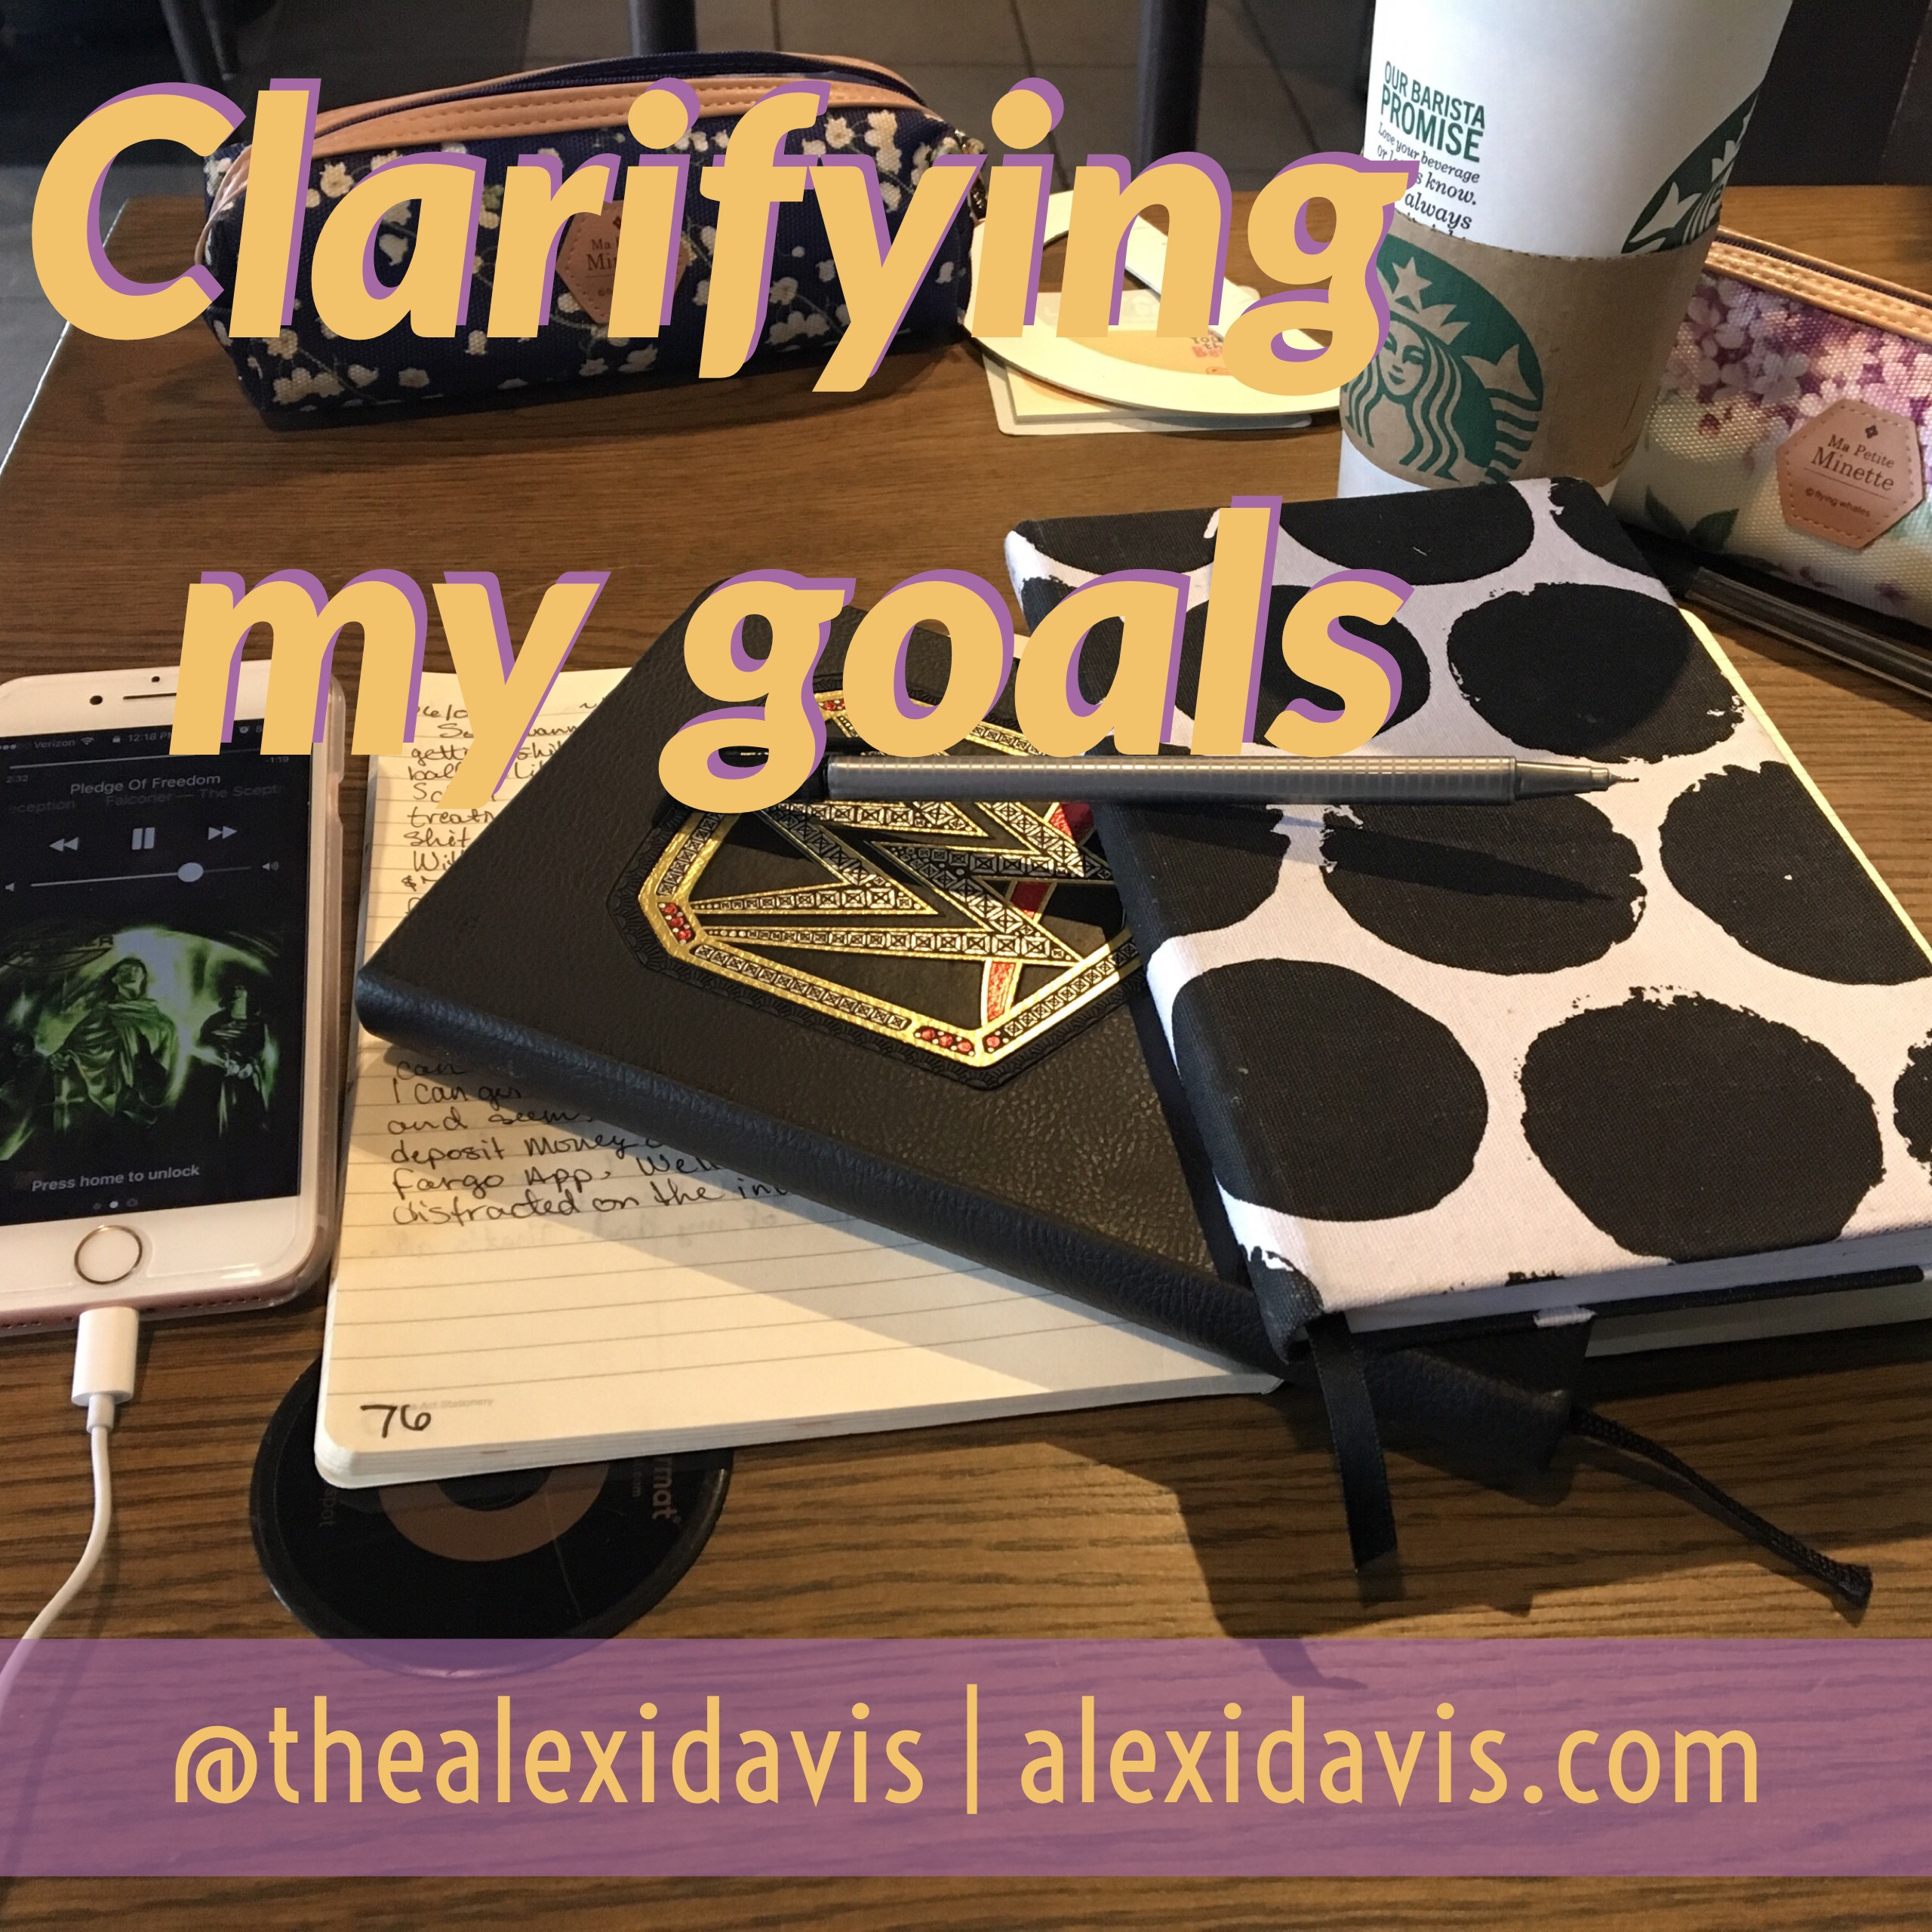 <p>Last week I showed you my tools and detailed my journal set up. But I realized that clarifying my goals is crucial to being able to accomplish them.</p>